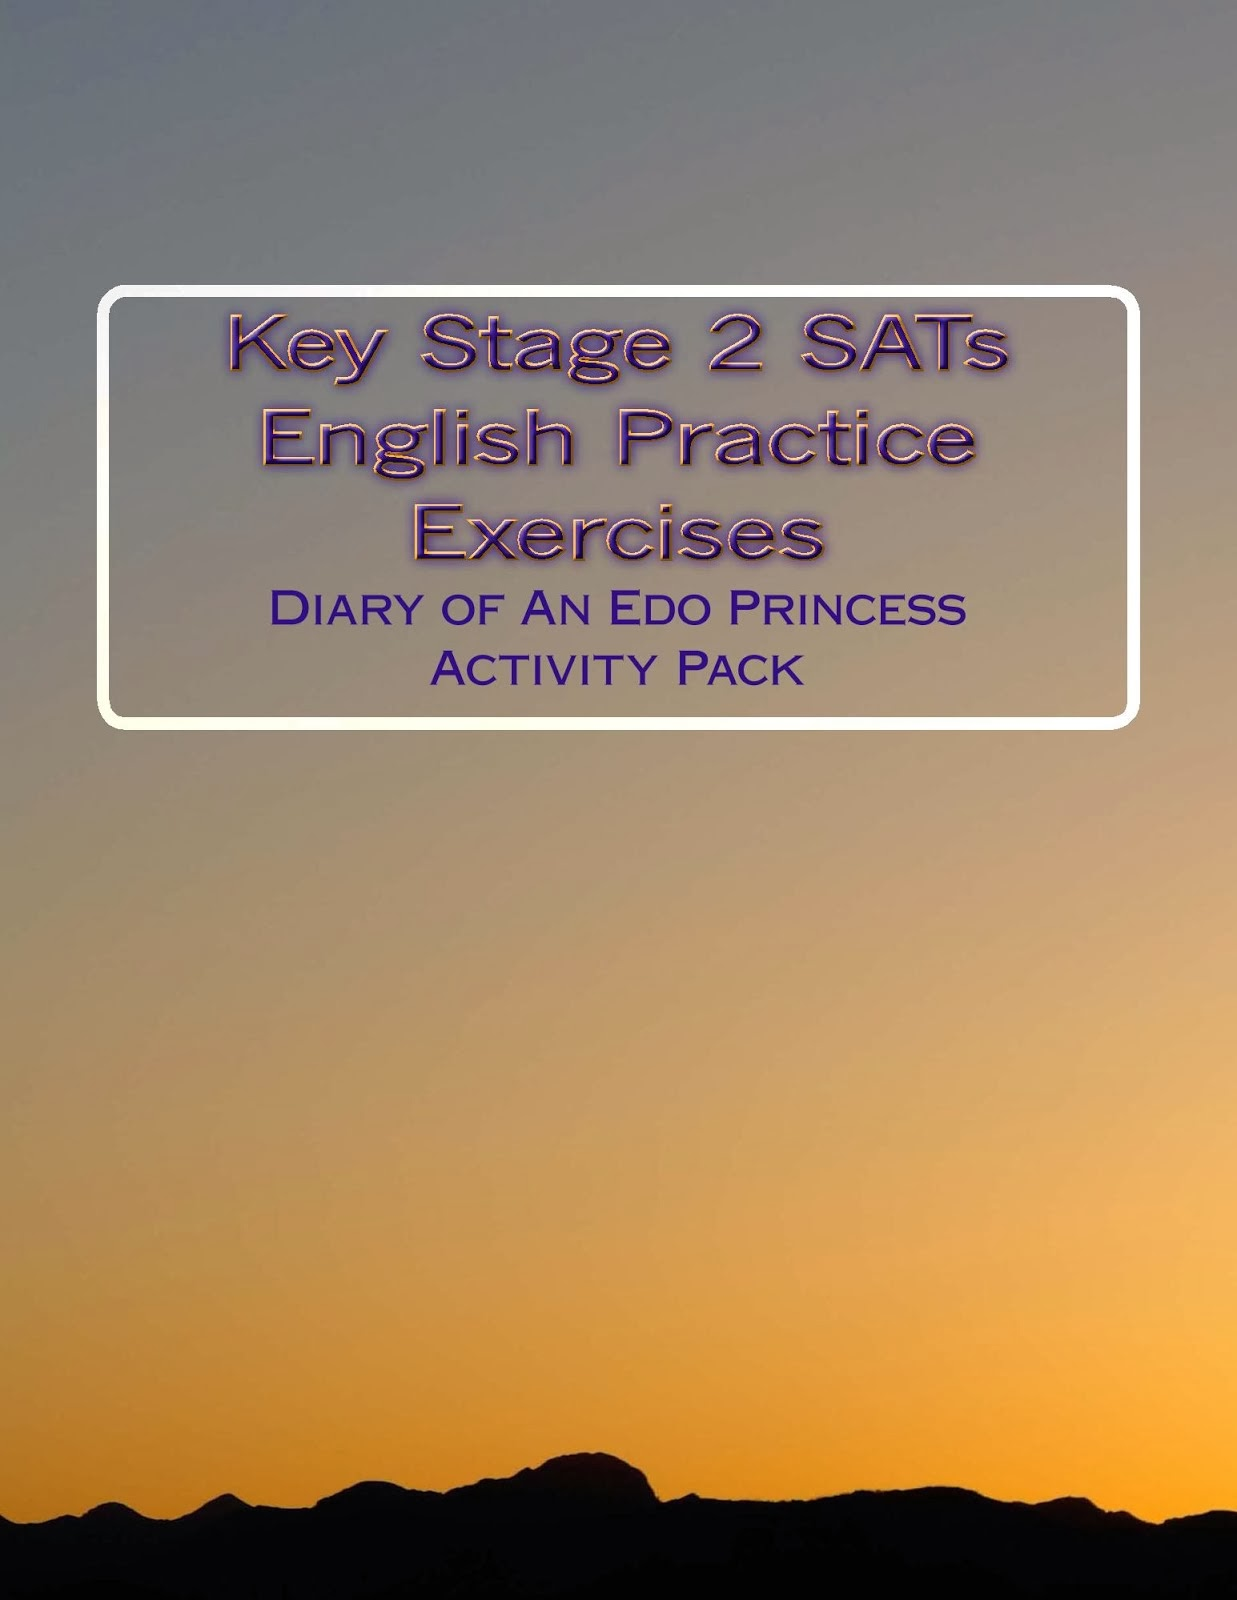 Key Stage 2 English Practice exercises